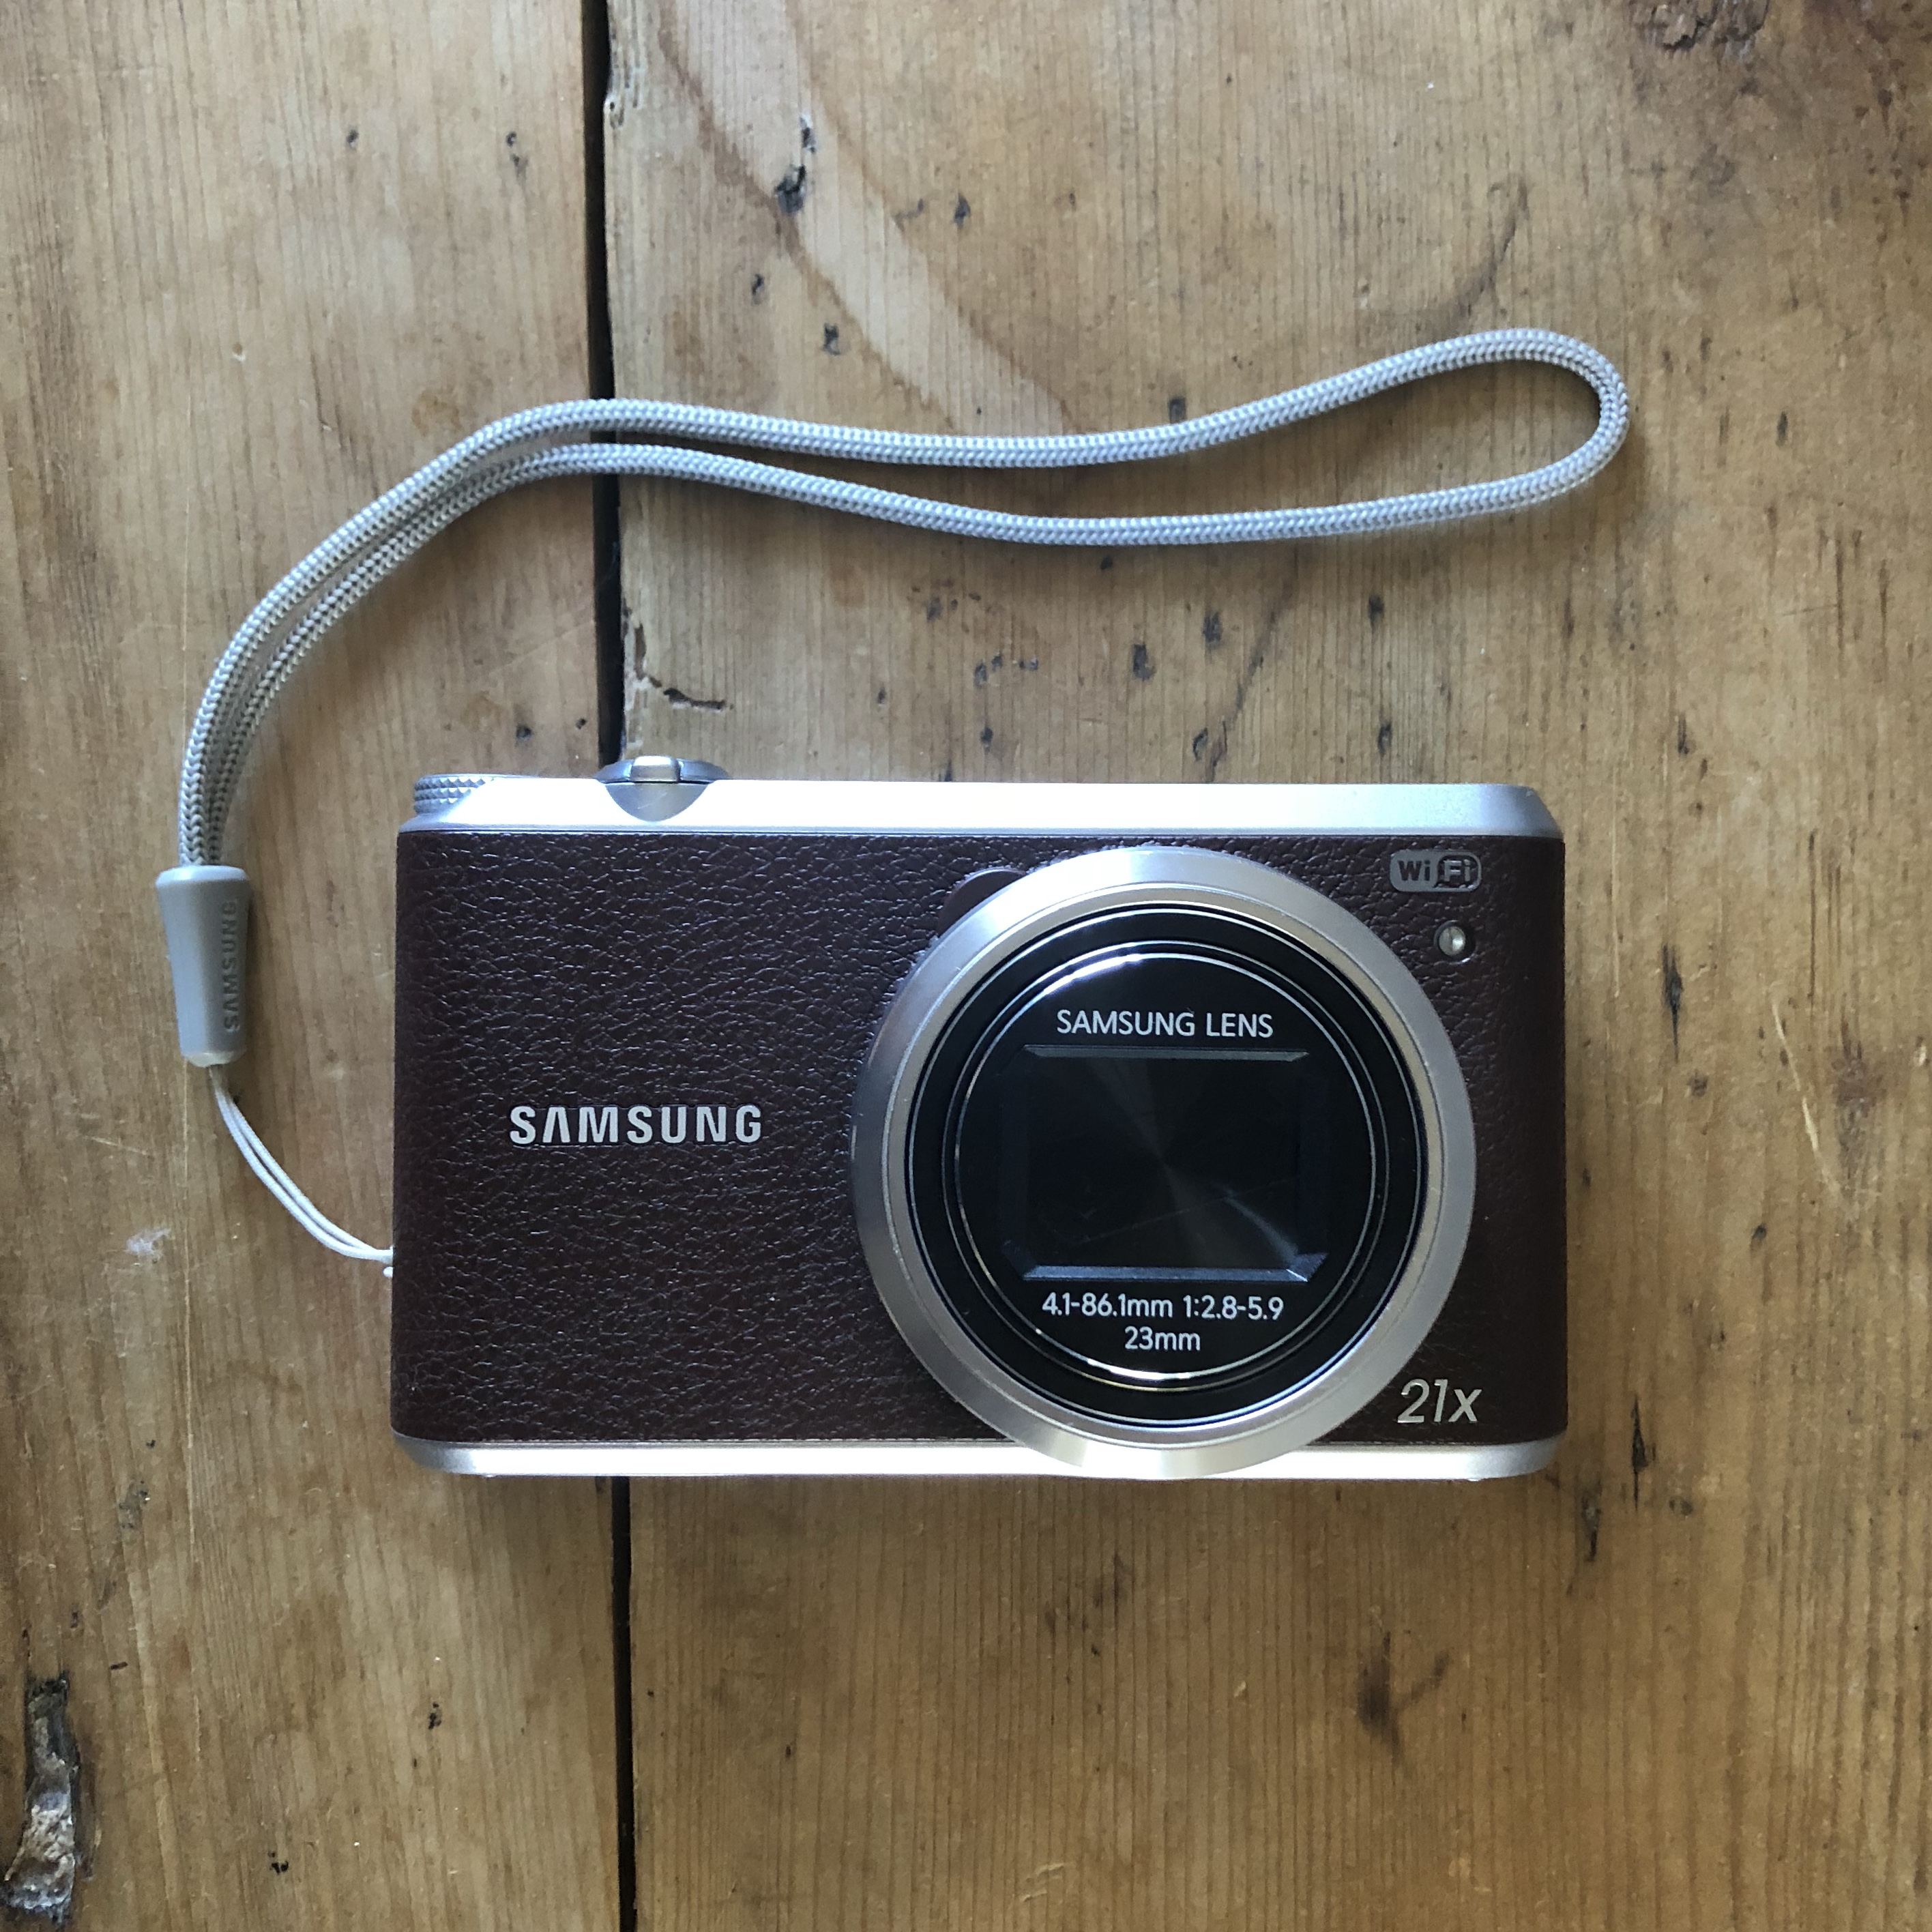 Samsung wb350f camera in a perfect condition  It    - Depop